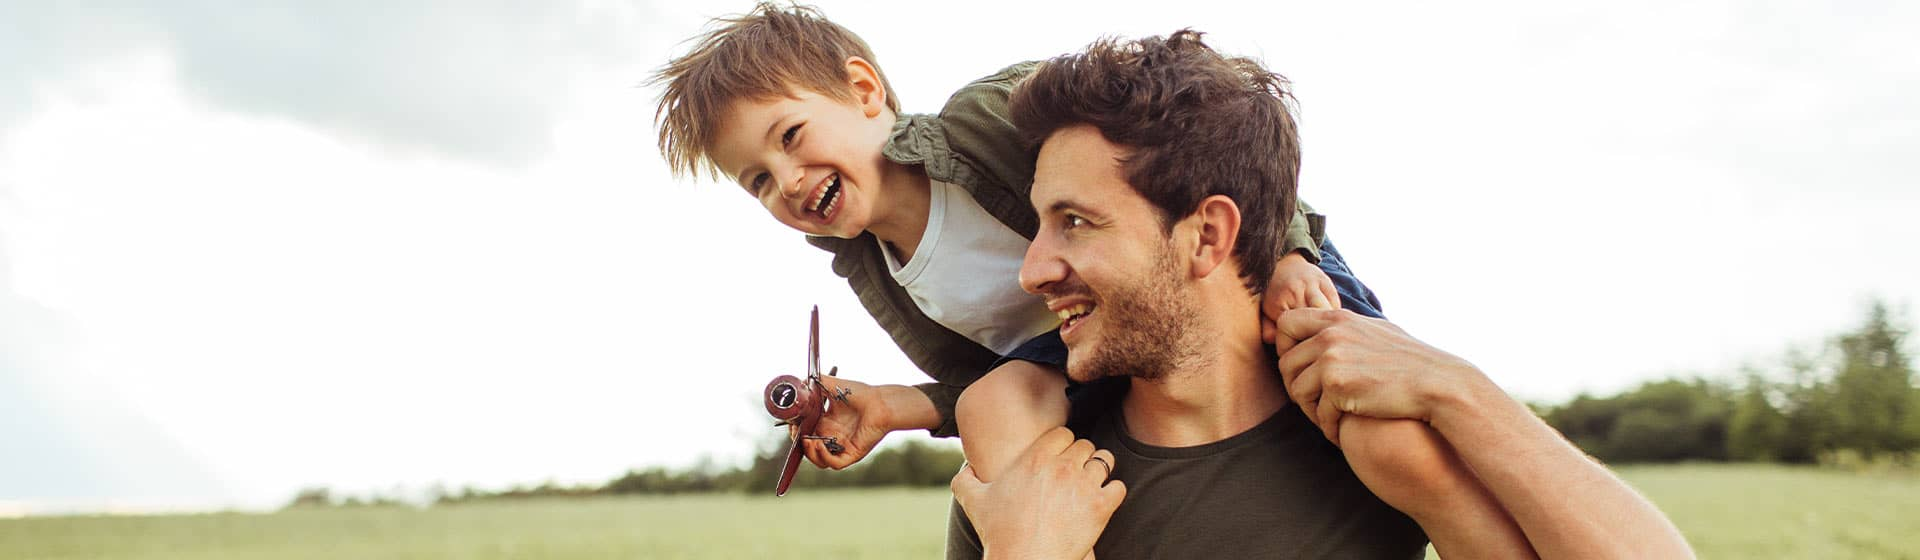 father son playing airplane in a field thinking about financial goals